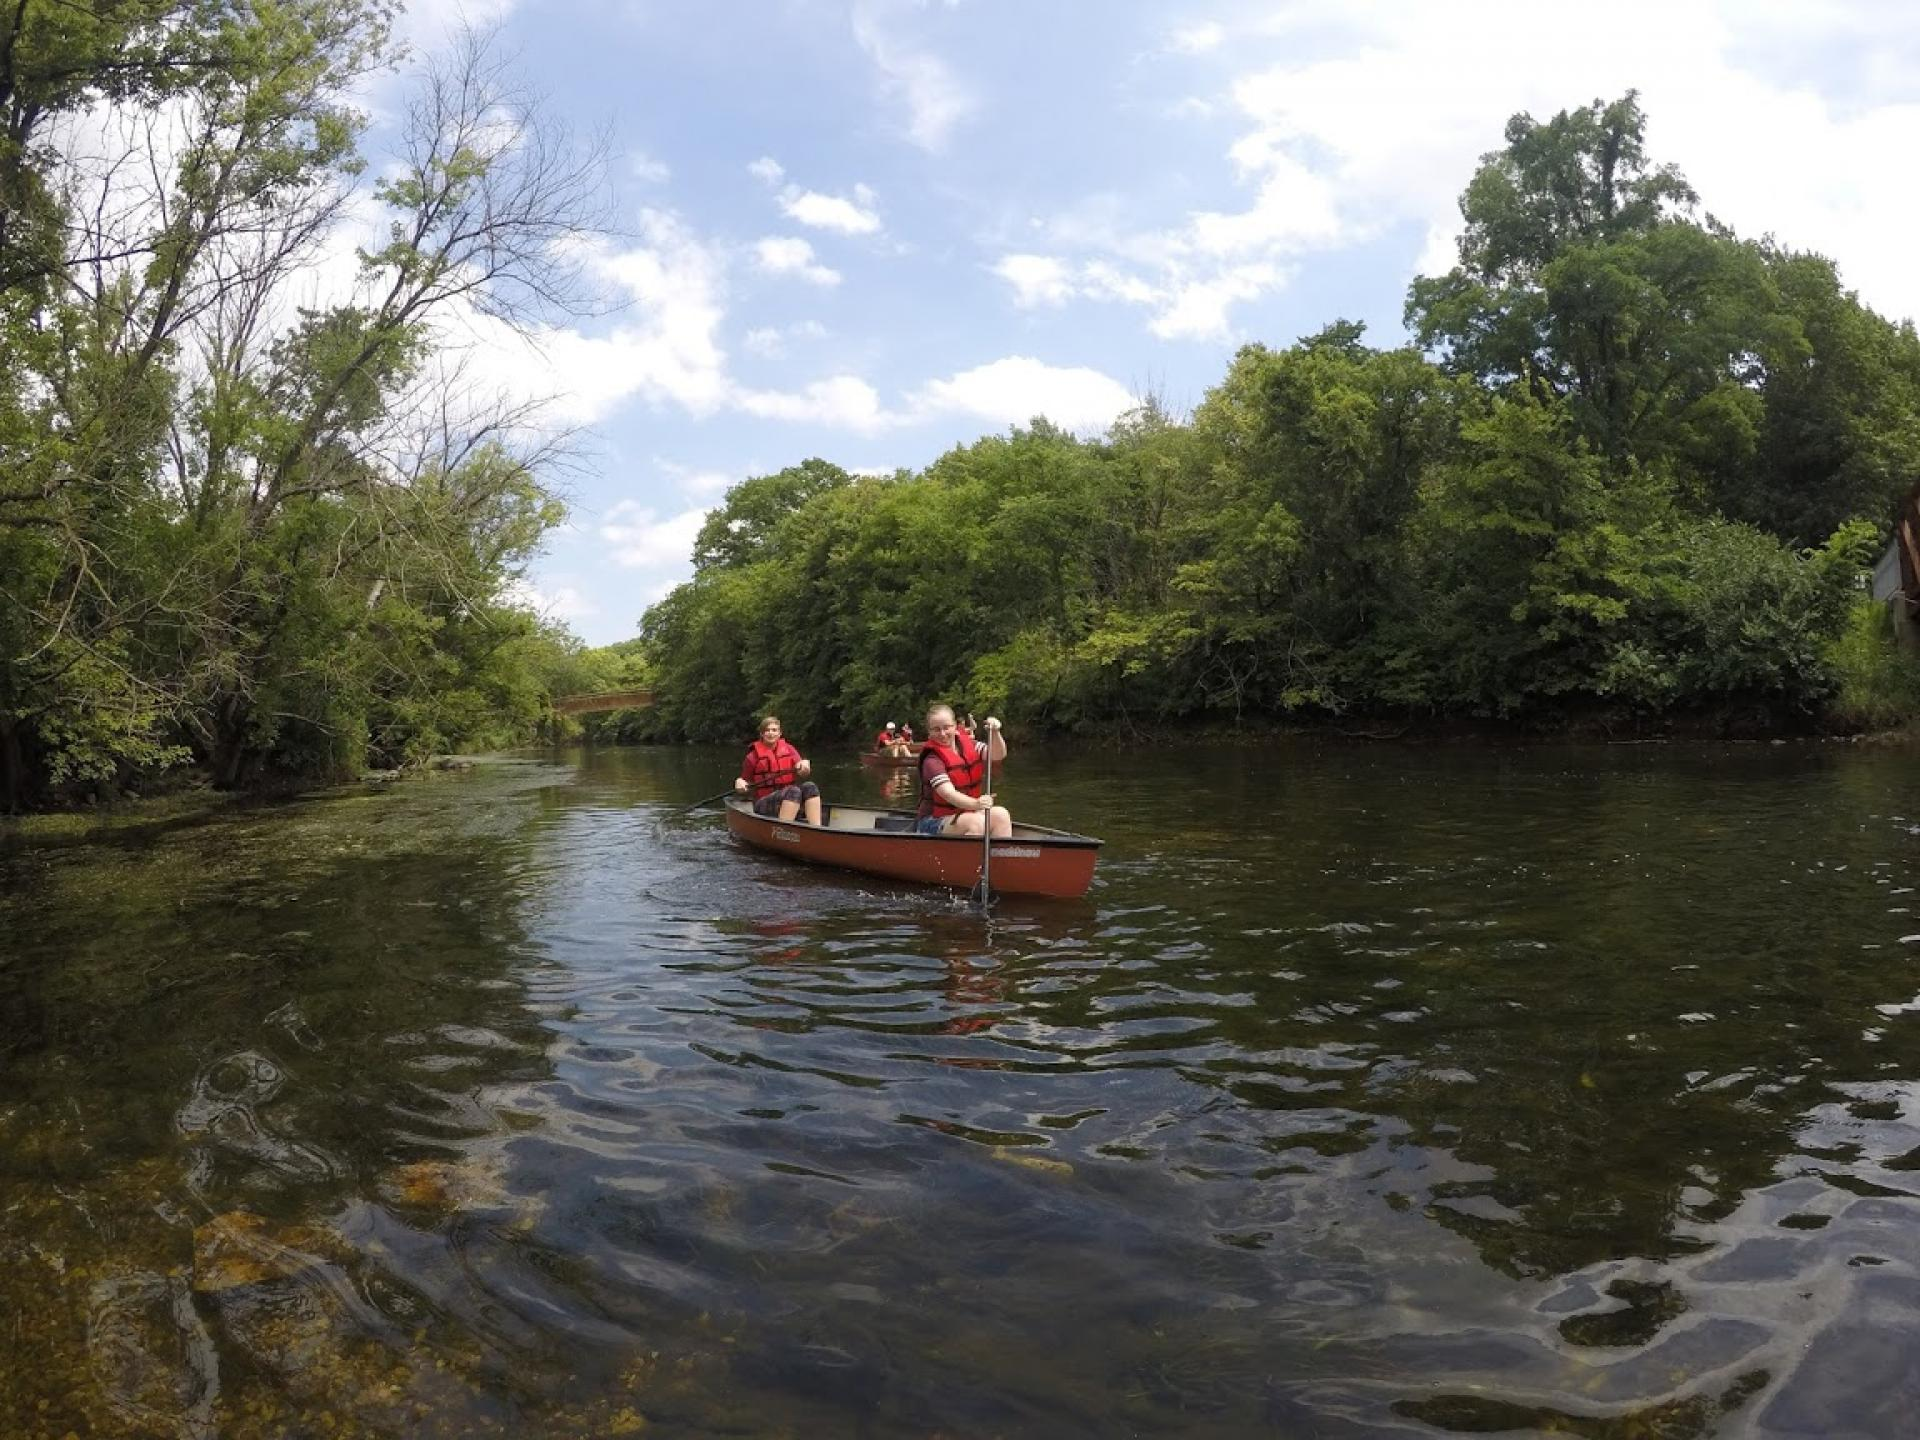 North Central Students kayaking down the DuPage River.